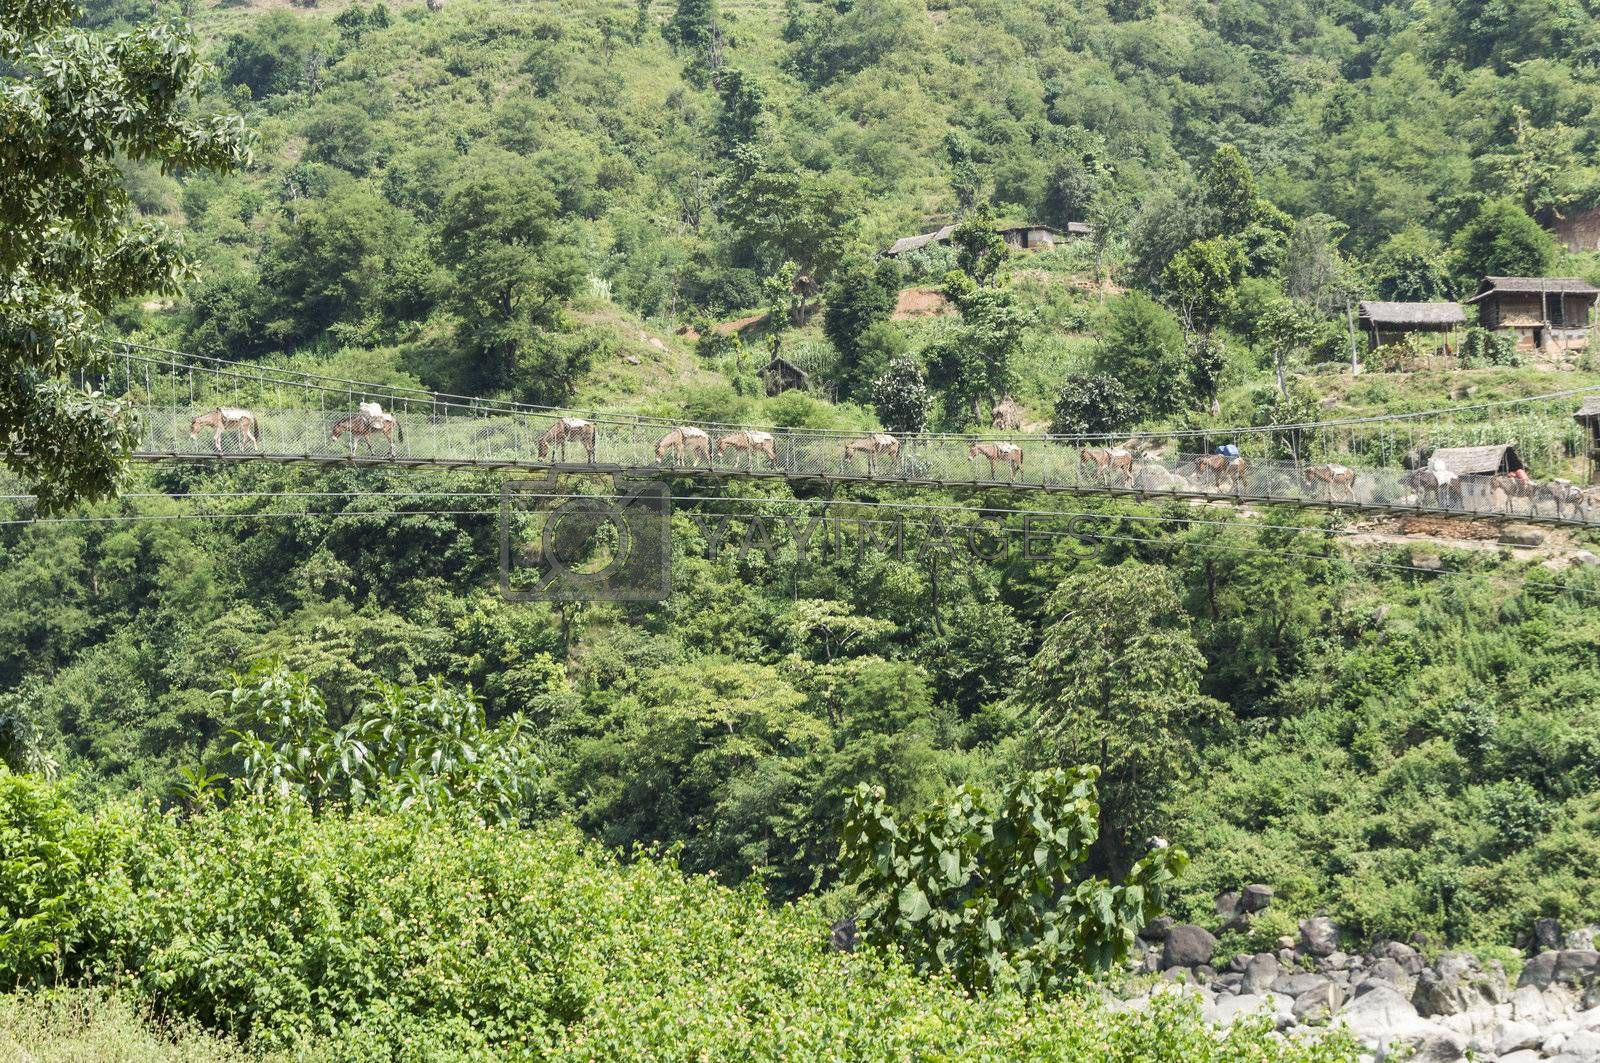 landscape with forest and bridge in nepal, asia